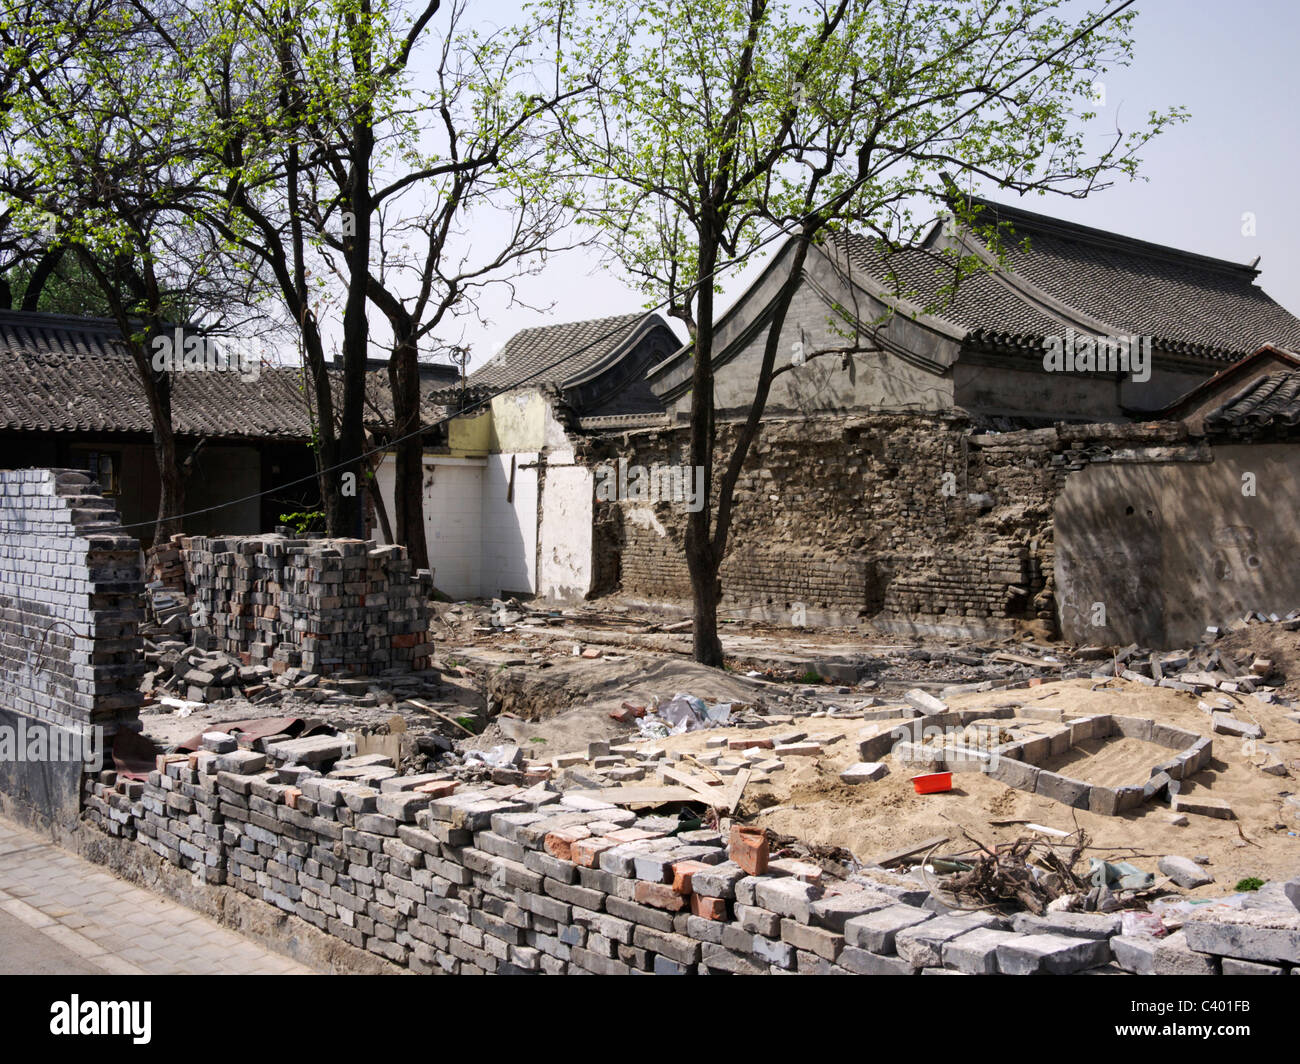 Construction site inside a Beijing Hutong, China - Stock Image